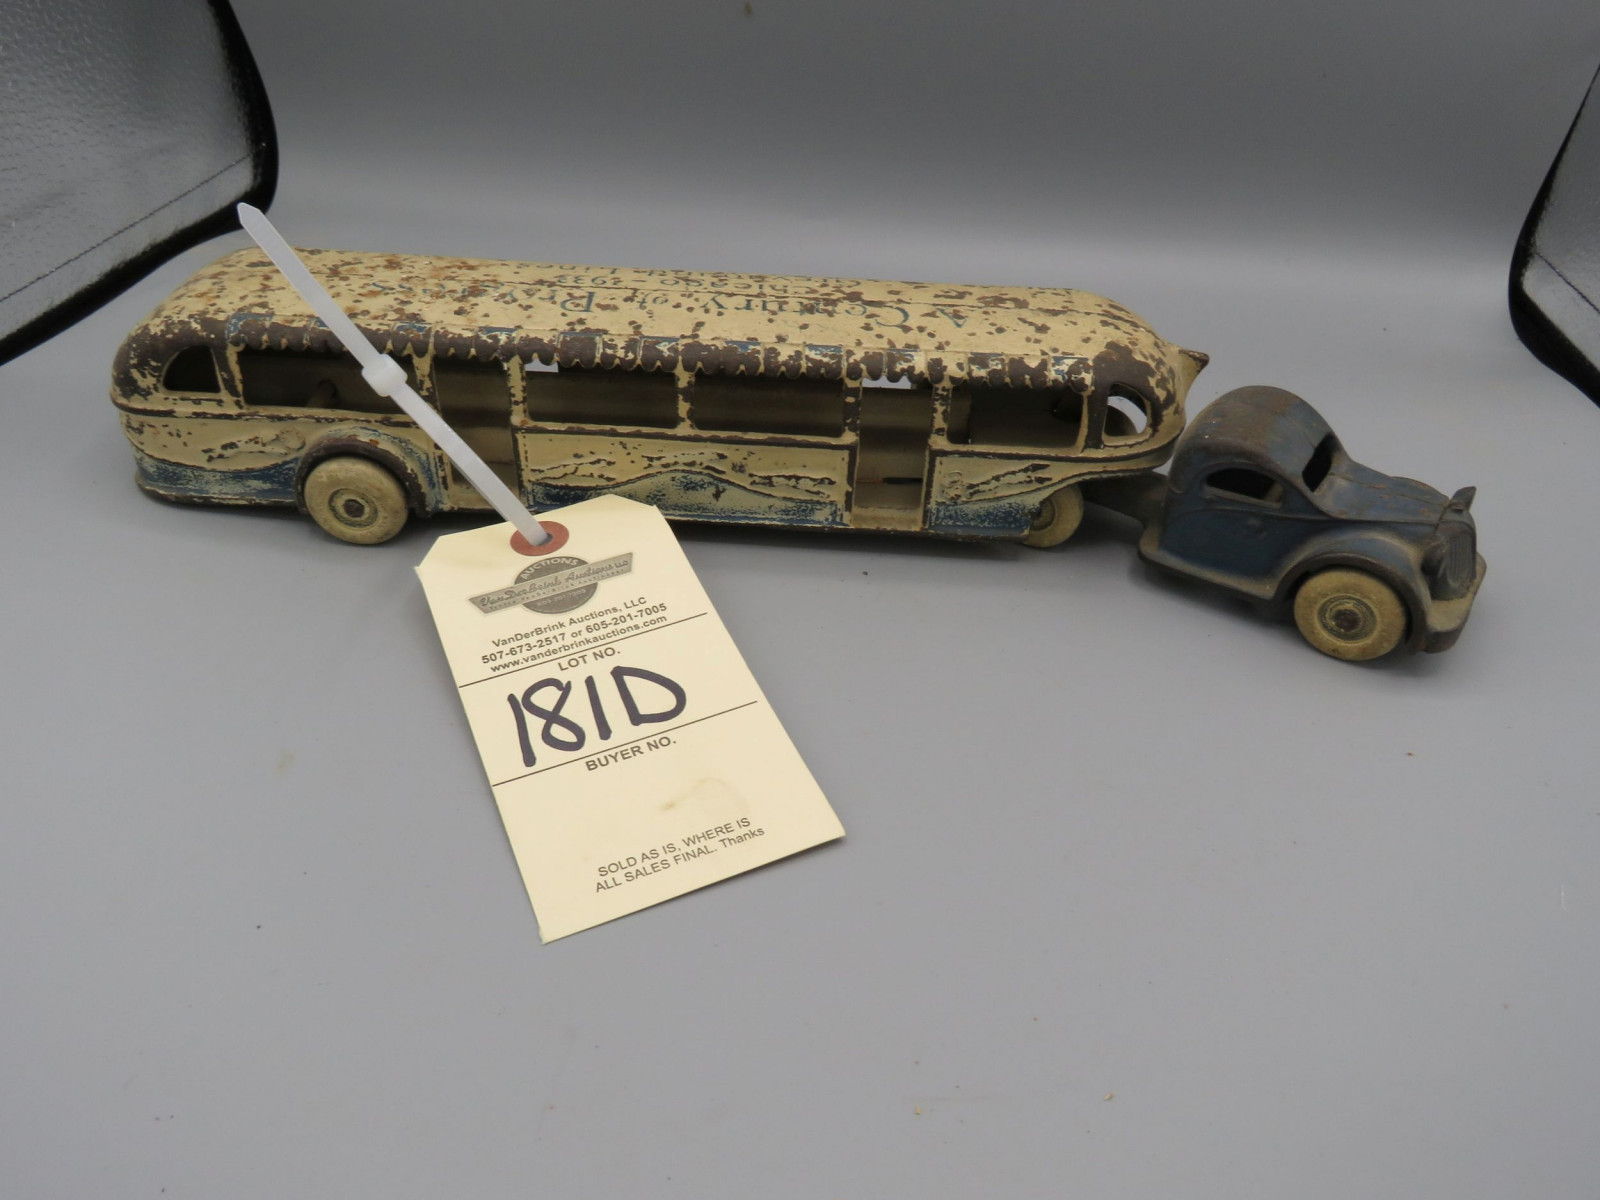 1933 Chicago's World Fair Arcade Greyhound Touring Bus  Cast Iron Approx. 14 inches - Image 1